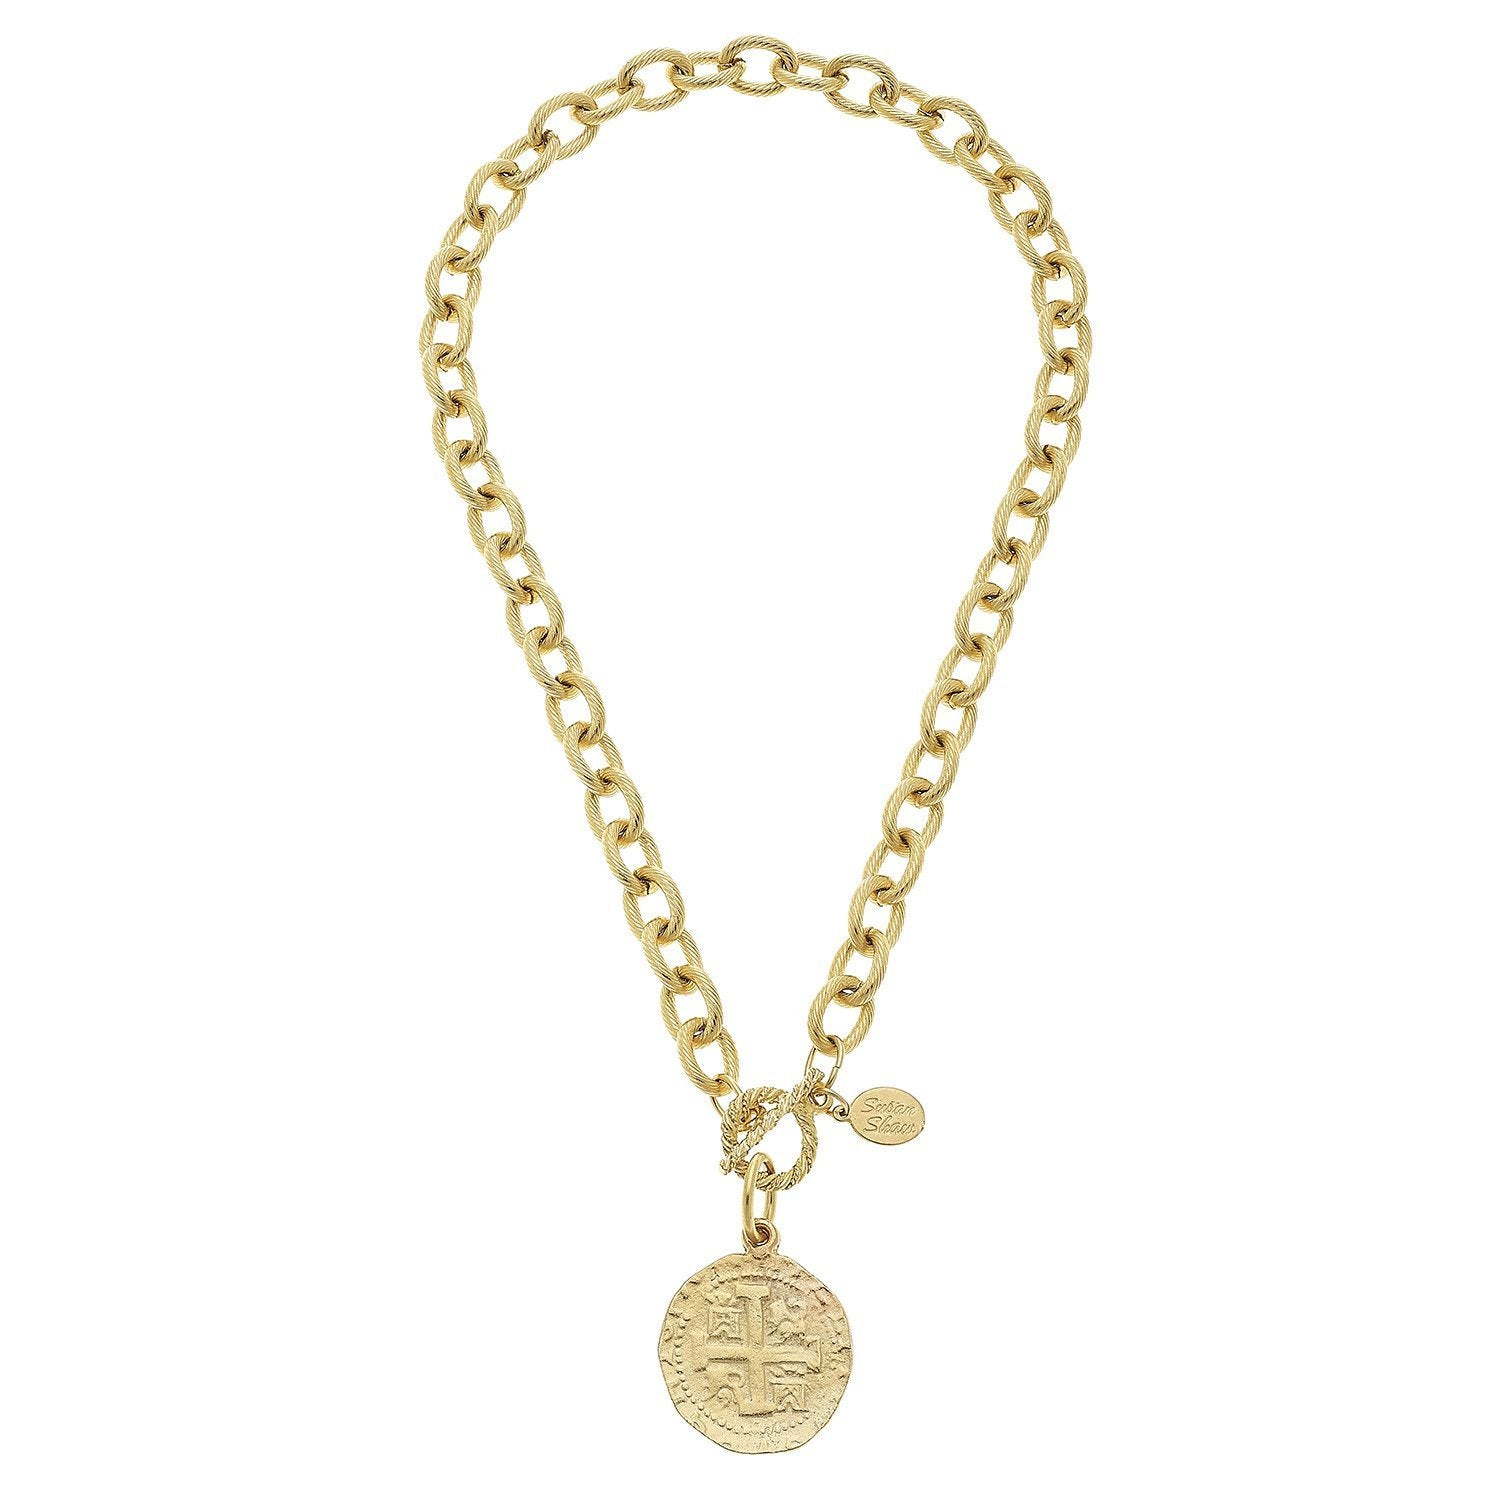 Susan Shaw Handcast Gold Coin Toggle Necklace